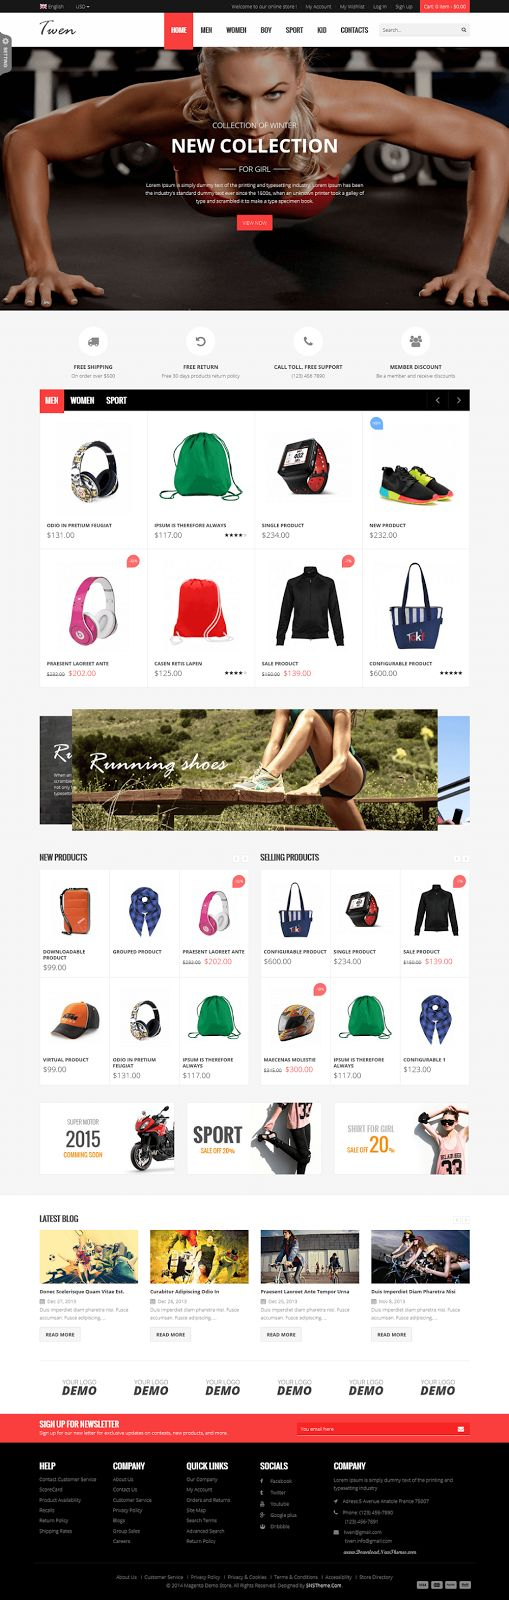 SNS Twen Latest Clean Design Responsive #Magento Theme #webdesign #shop #eCommerce